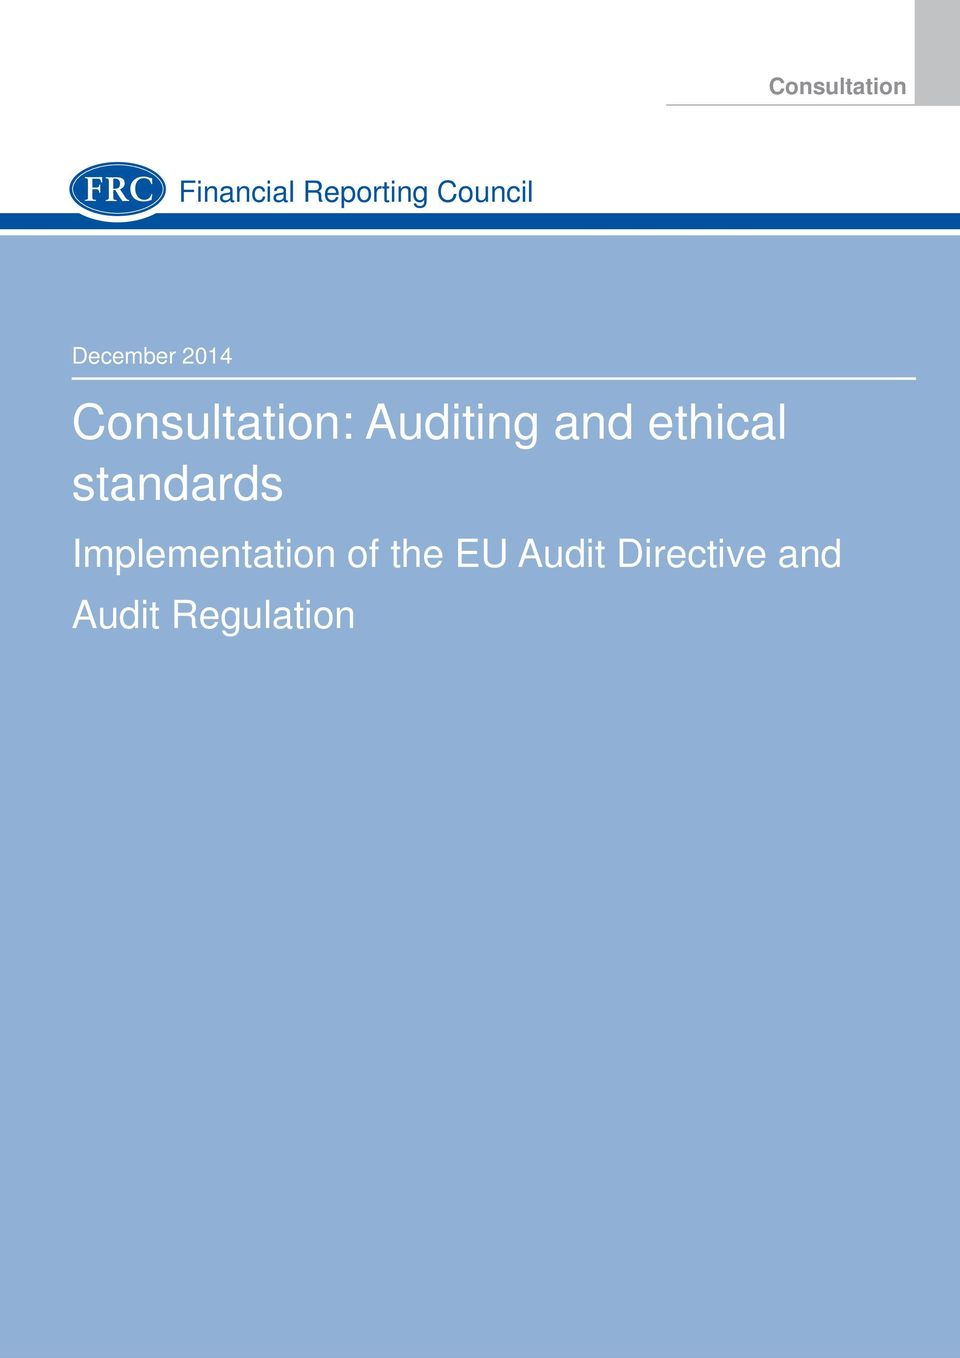 ethical standards Implementation of the